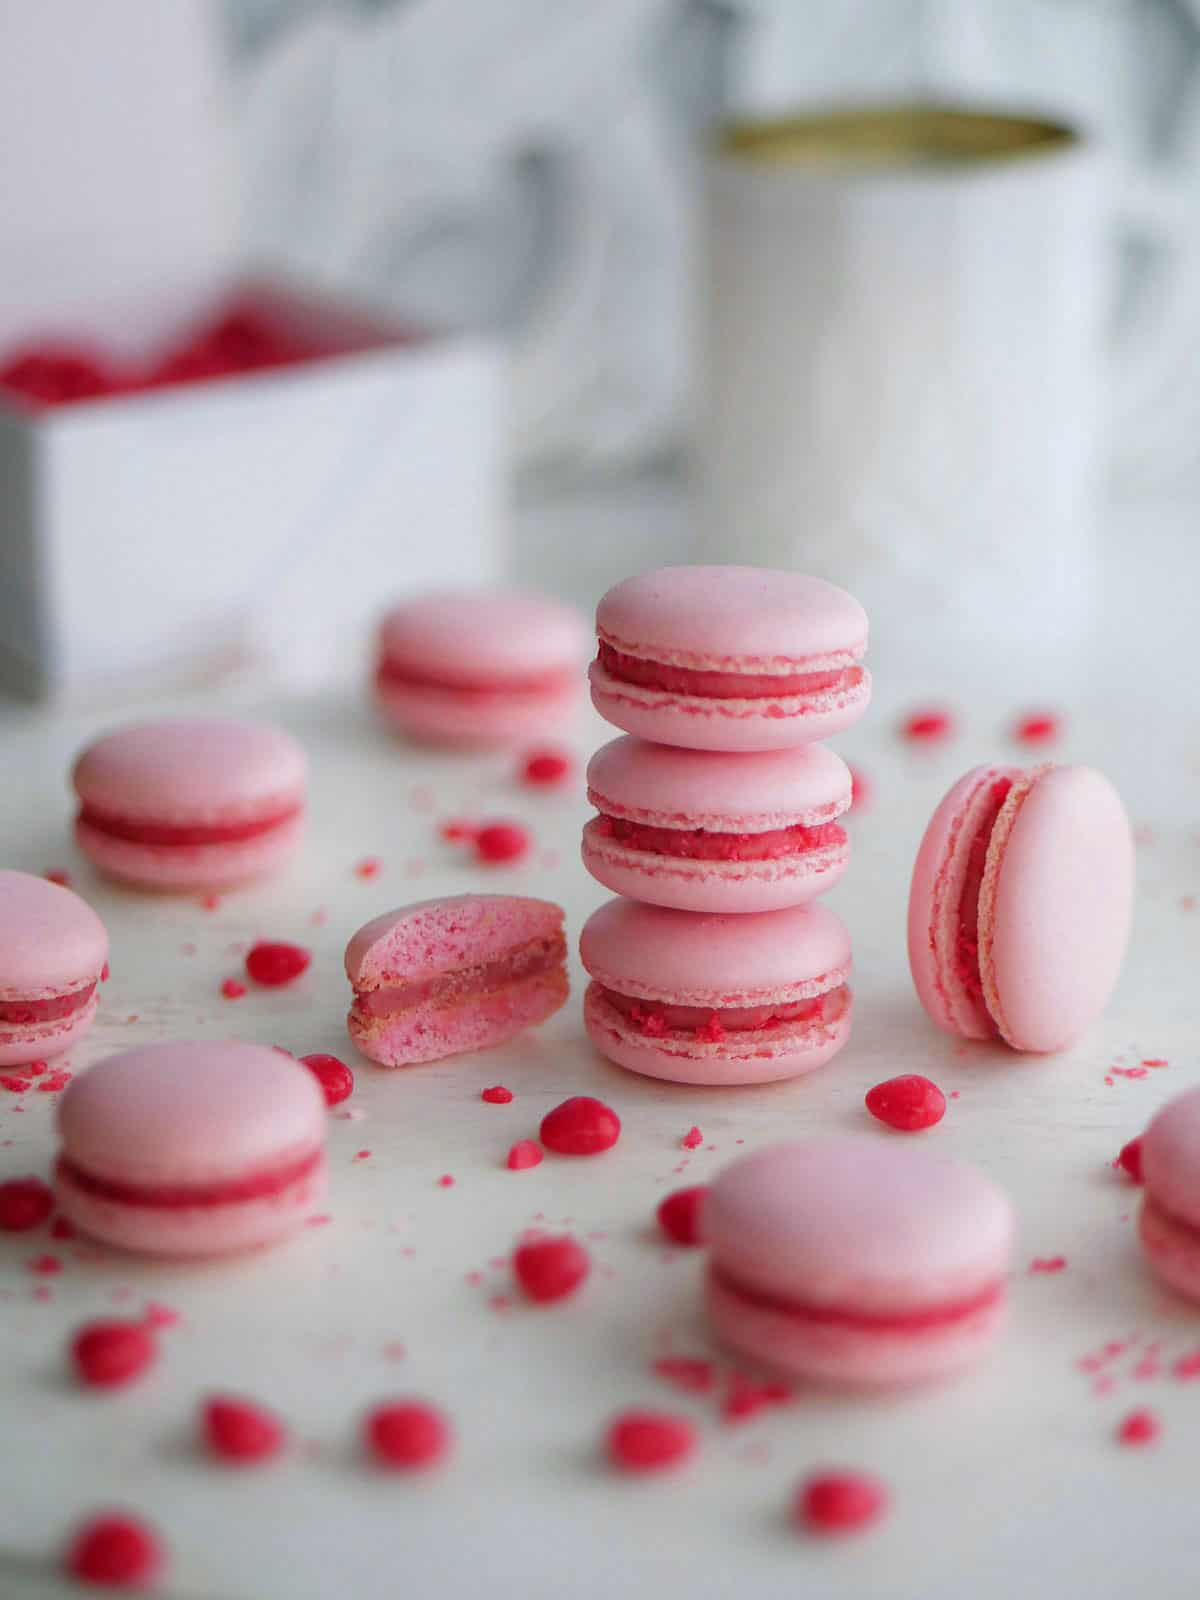 A whole tabletop filled with pink macarons with non-hollow one cut open.